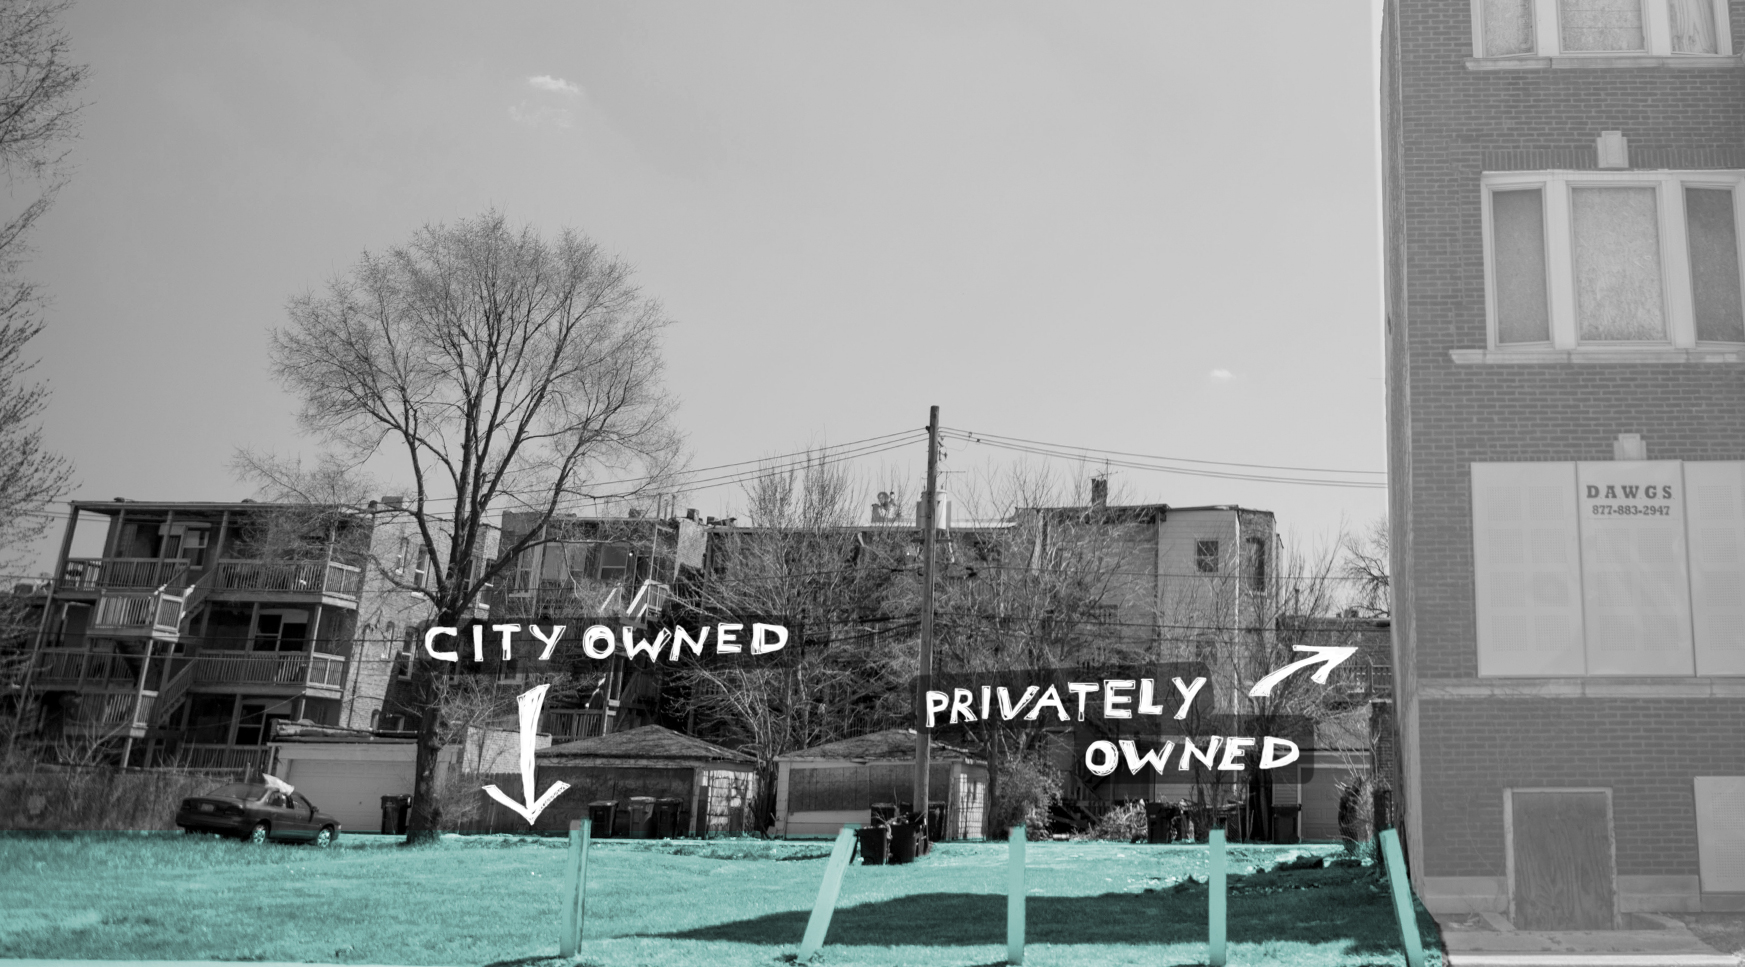 Private vs City Owned